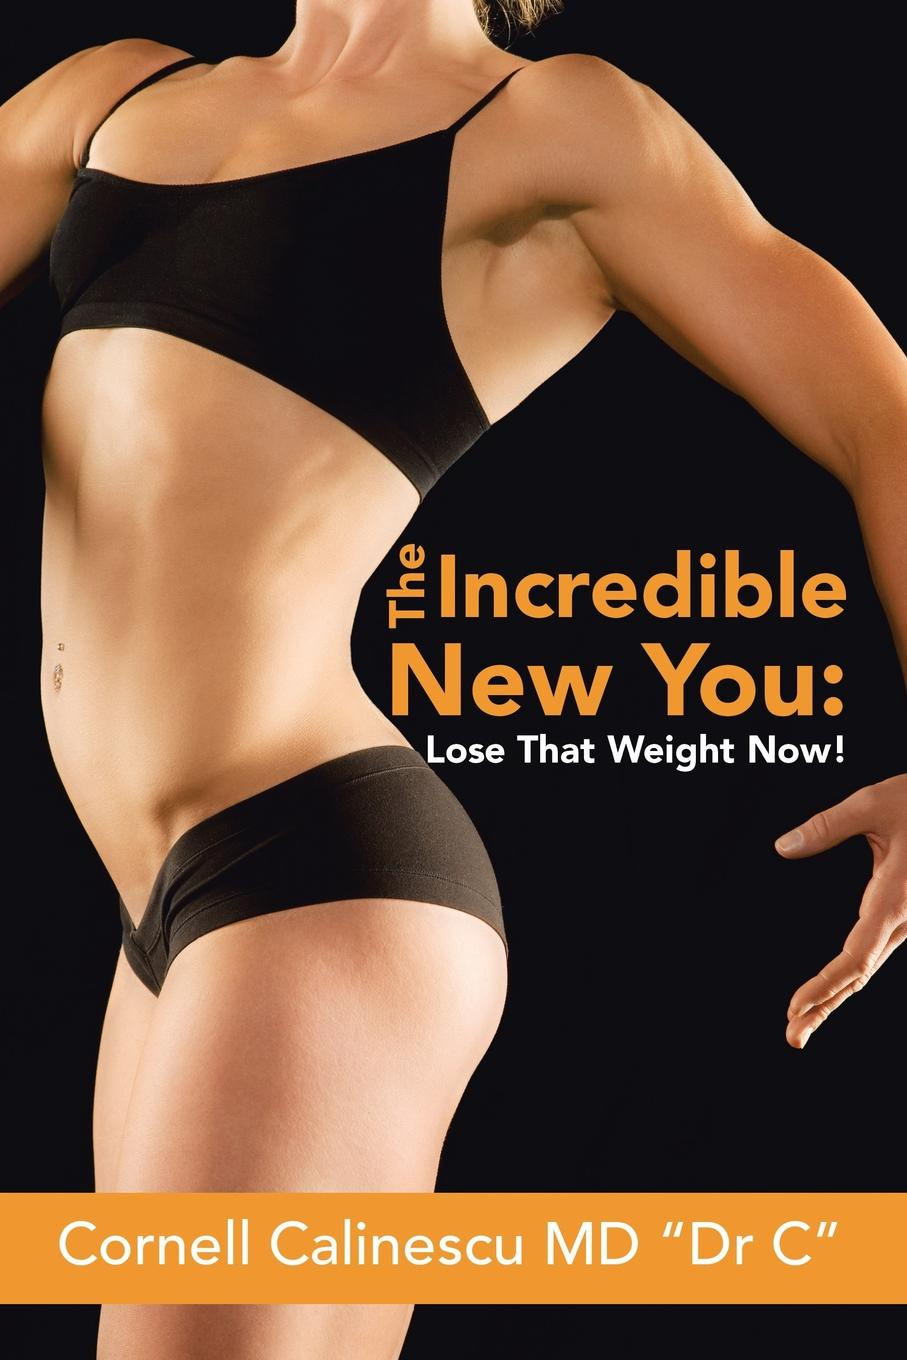 Cornell Calinescu MD Dr C The Incredible New You. : Lose That Weight Now!